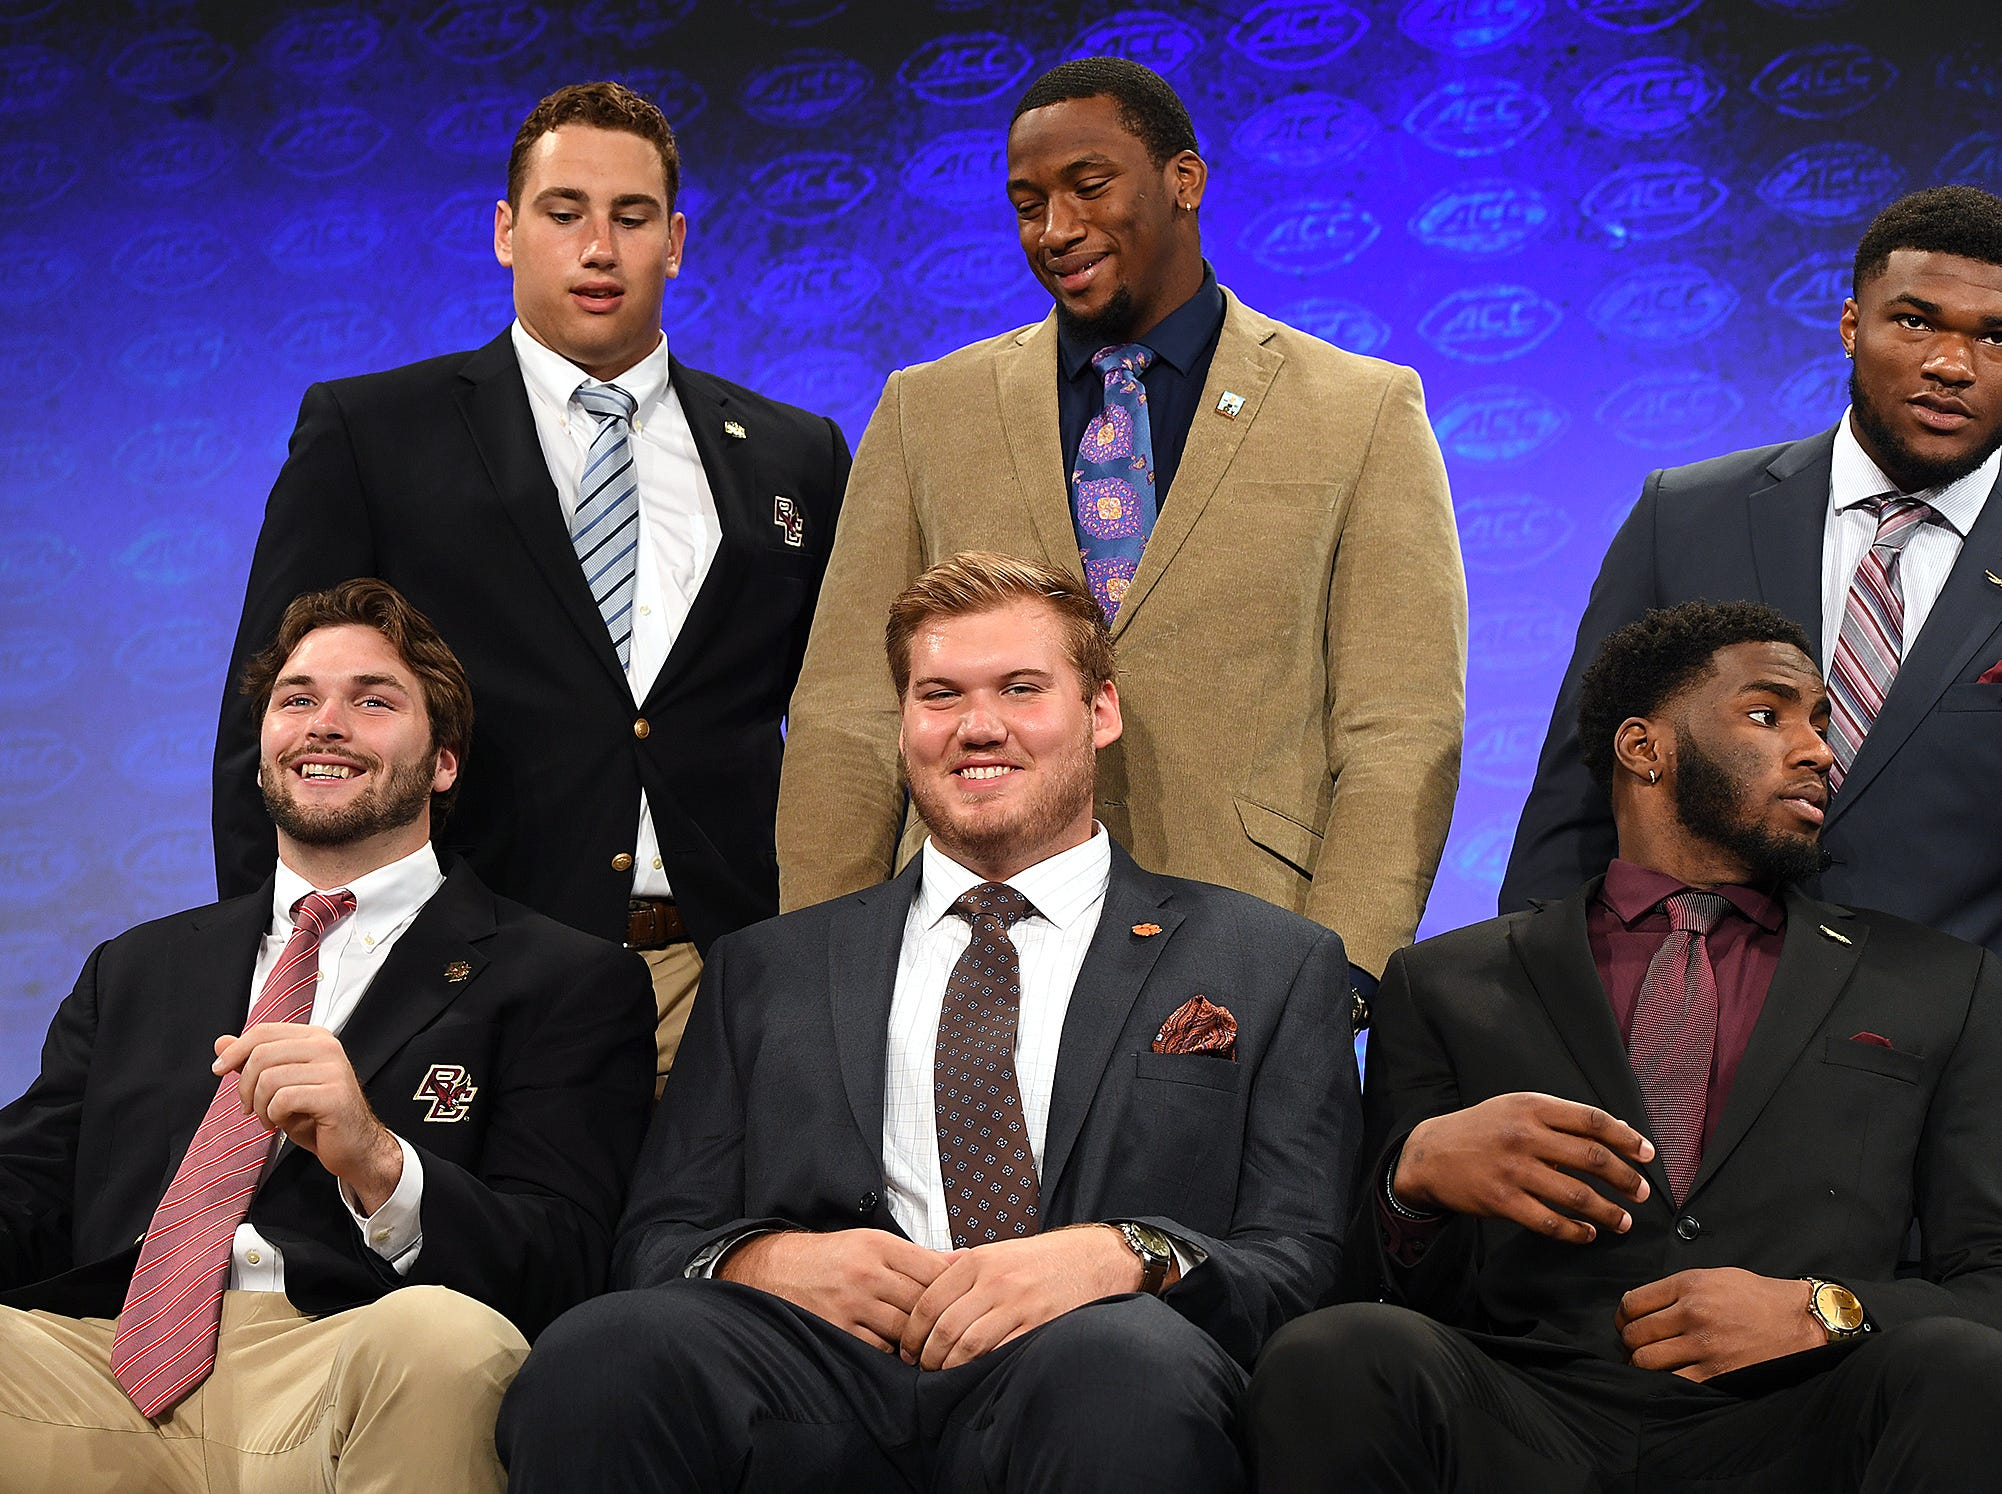 Clemson's Mitch Hyatt, front center, and Clean Ferrell wait on the Atlantic Division group photo at the ACC Football Kickoff in Charlotte, N.C., Thursday, July 19, 2018.